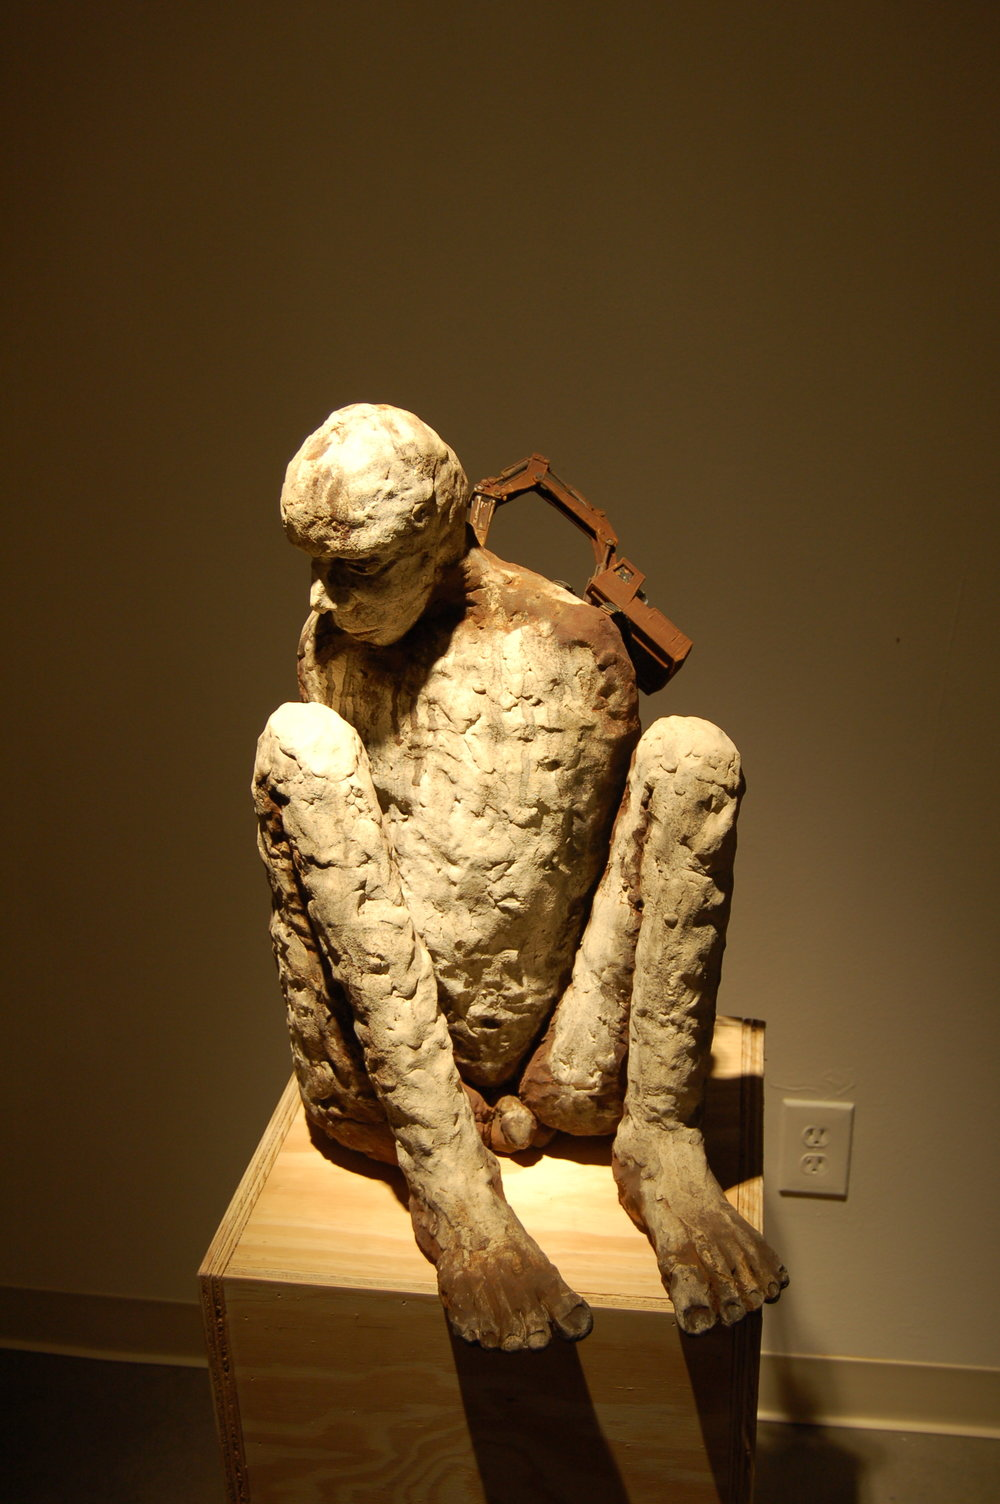 Excavating the present   2005  Ceramic with rusted toy  23 x 12 x 18   A toy machine penetrates the spine of the figure, creating a life of pain and limitations.     (my neck vertebrae C-7 was fractured in 1979)